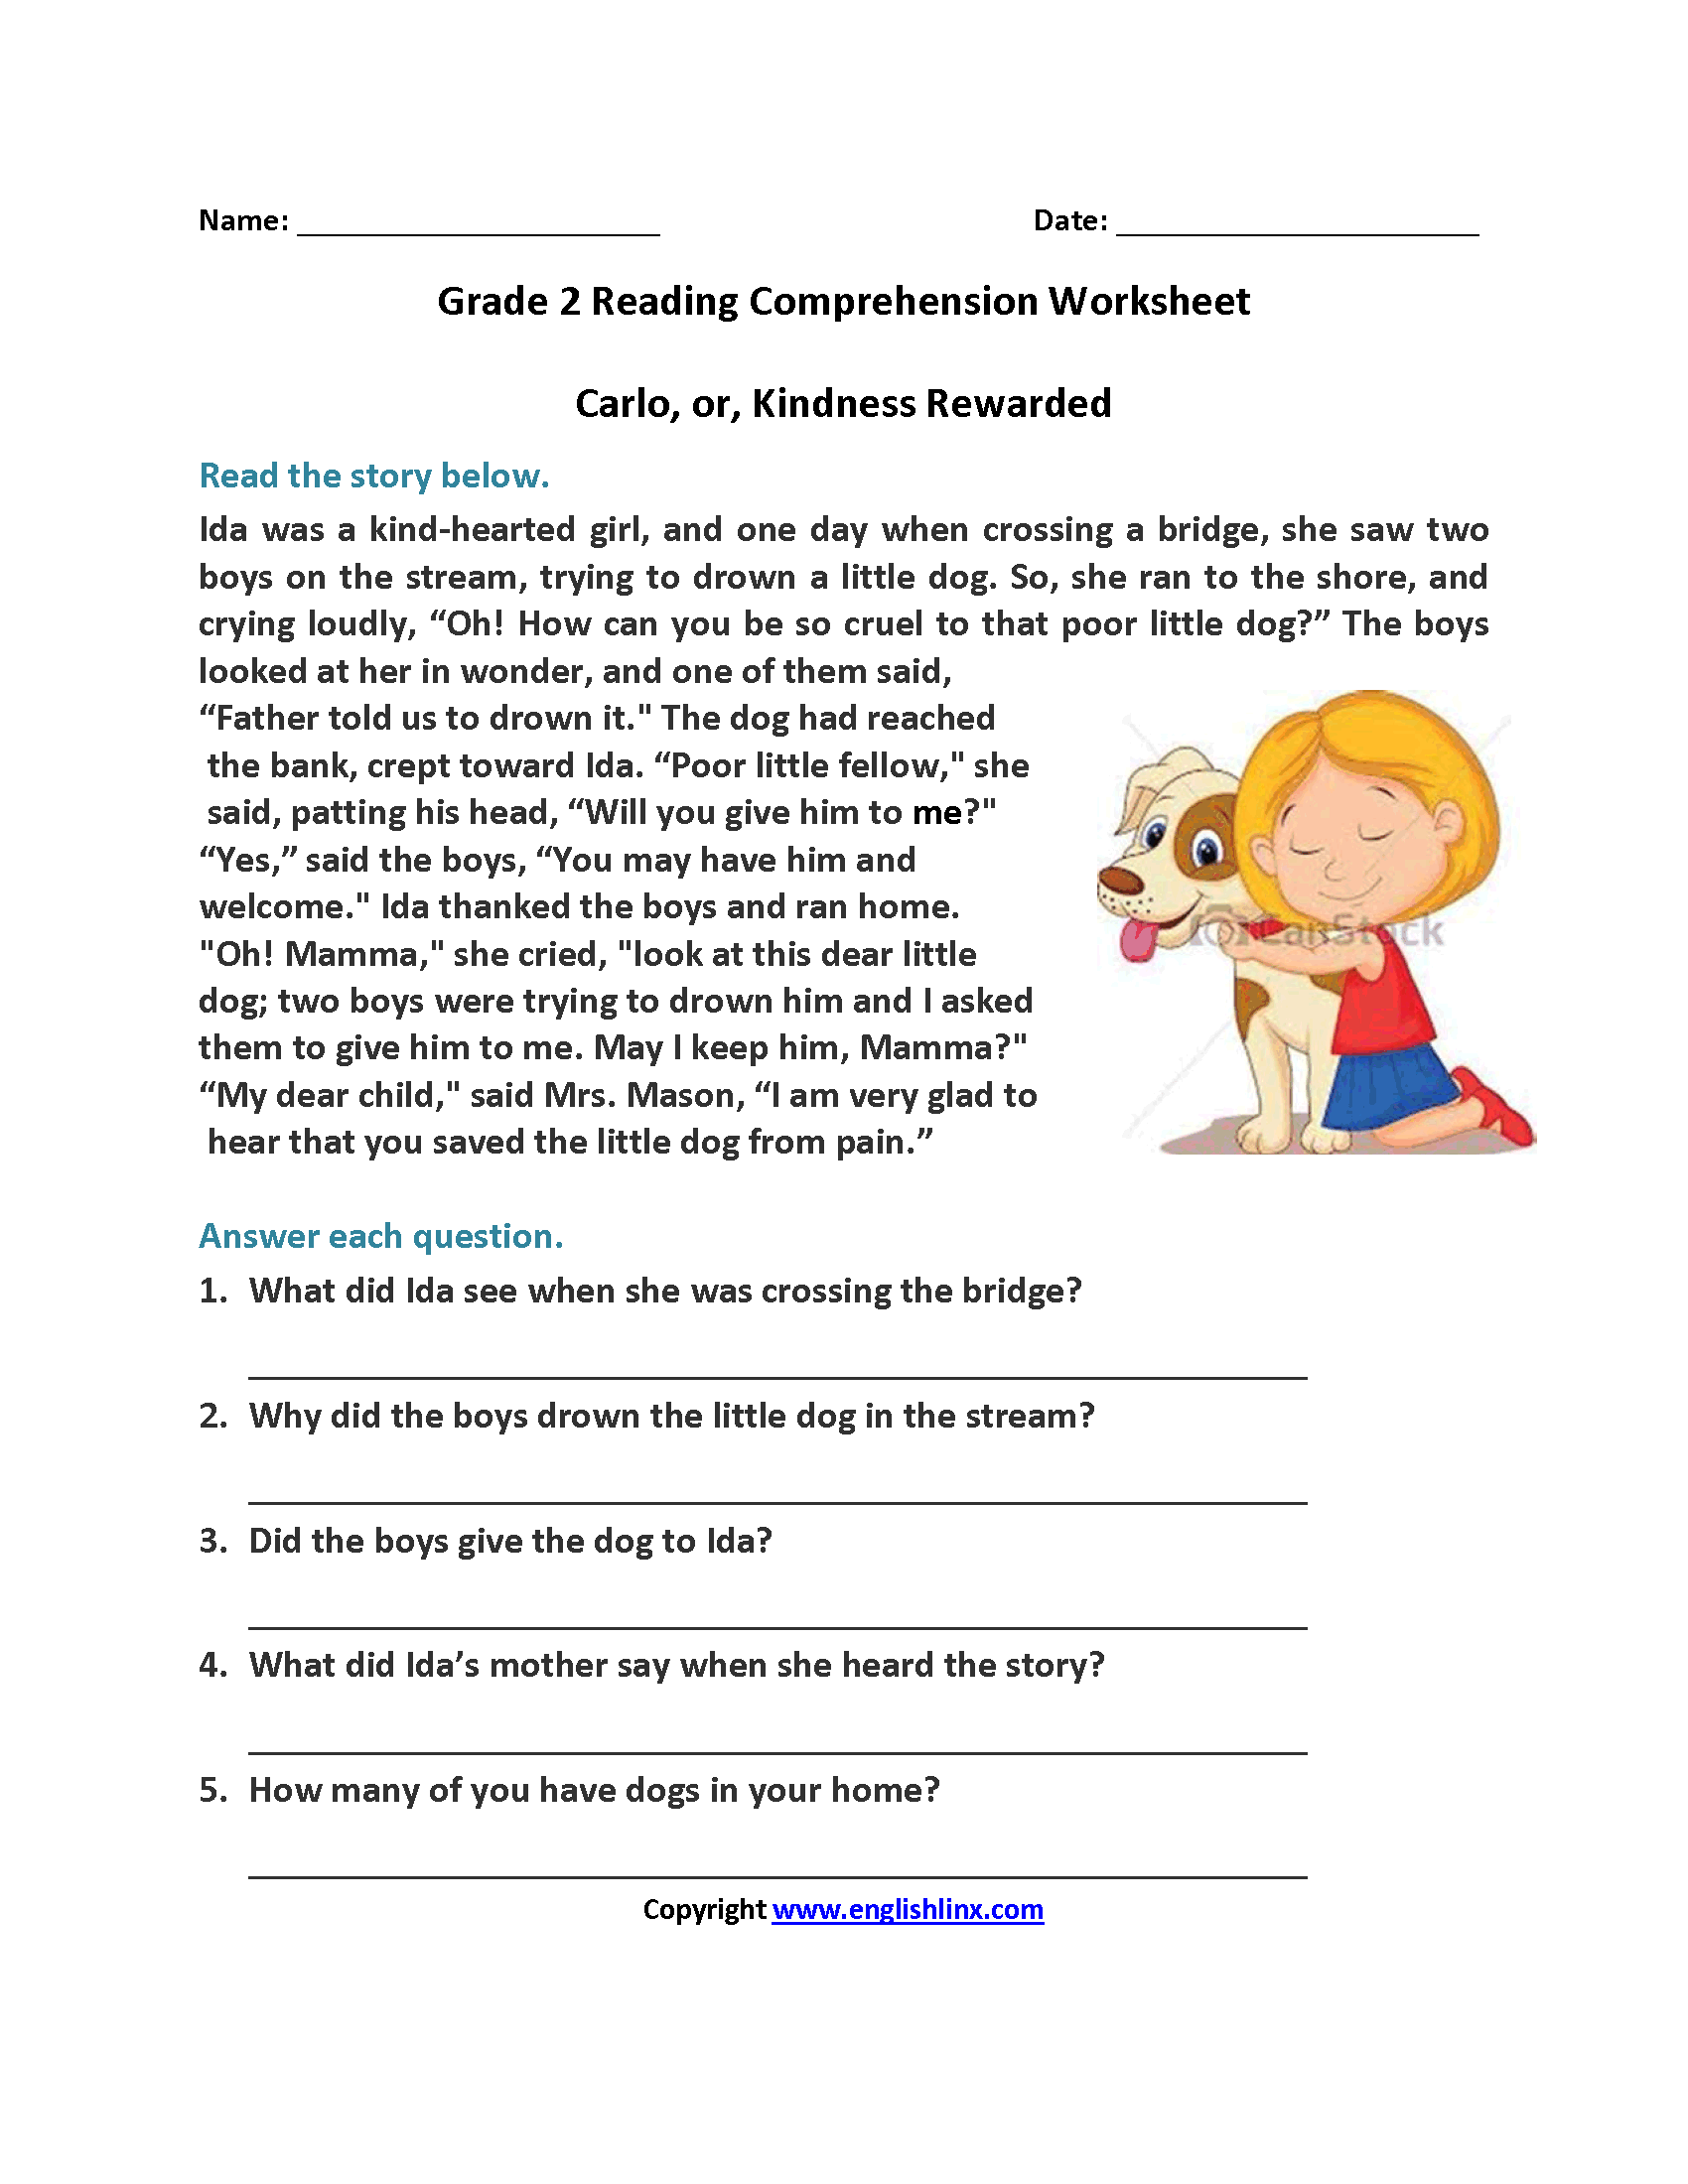 Worksheets Comprehension Worksheets 2nd Grade carlo or kindness rewarded second grade reading worksheets worksheets